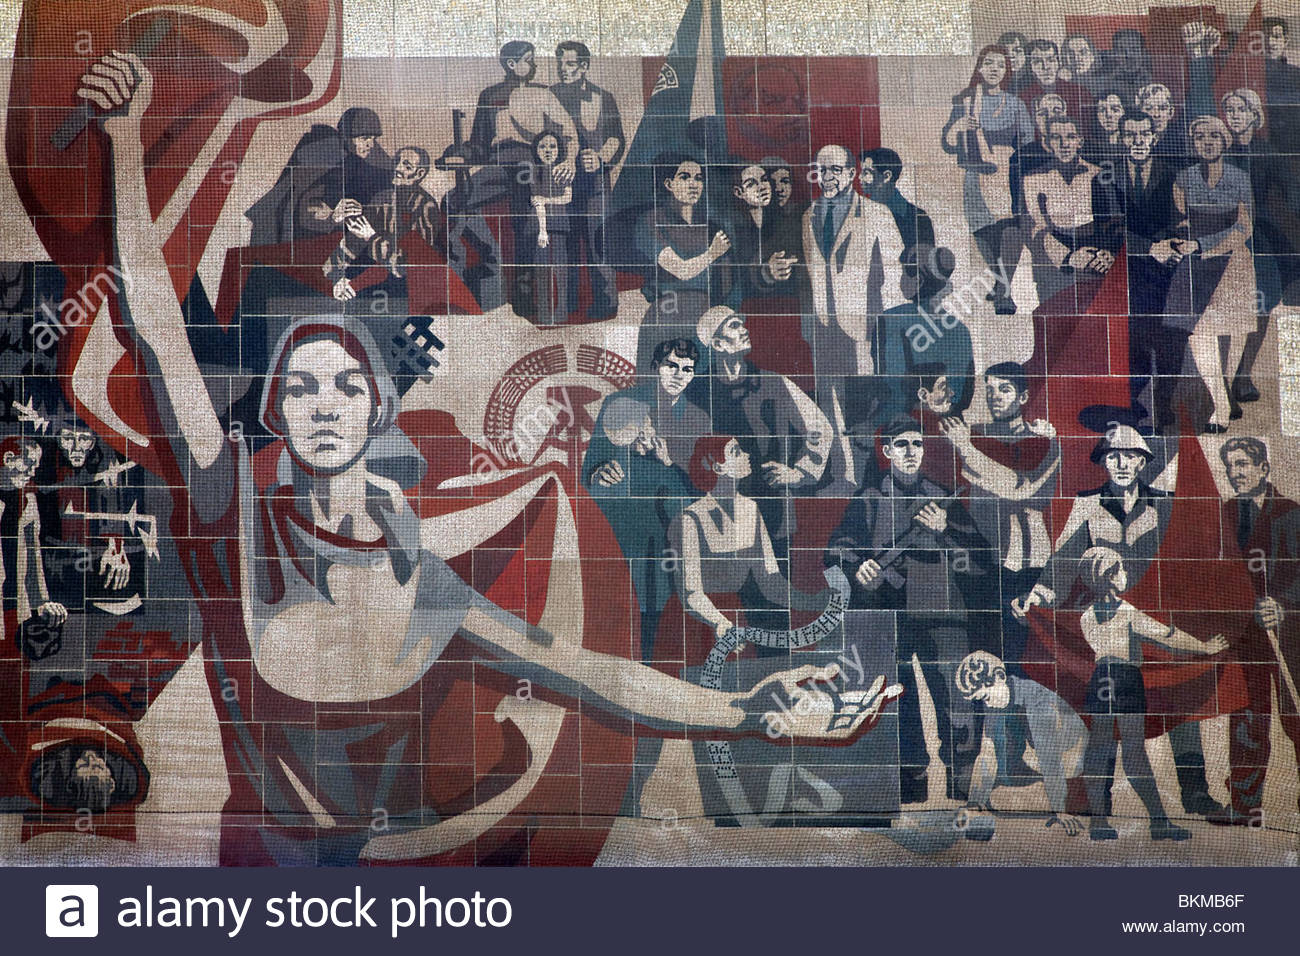 Communist propaganda mural on the wall of the Kulturpalast in Dresden, Germany. Stock Photo